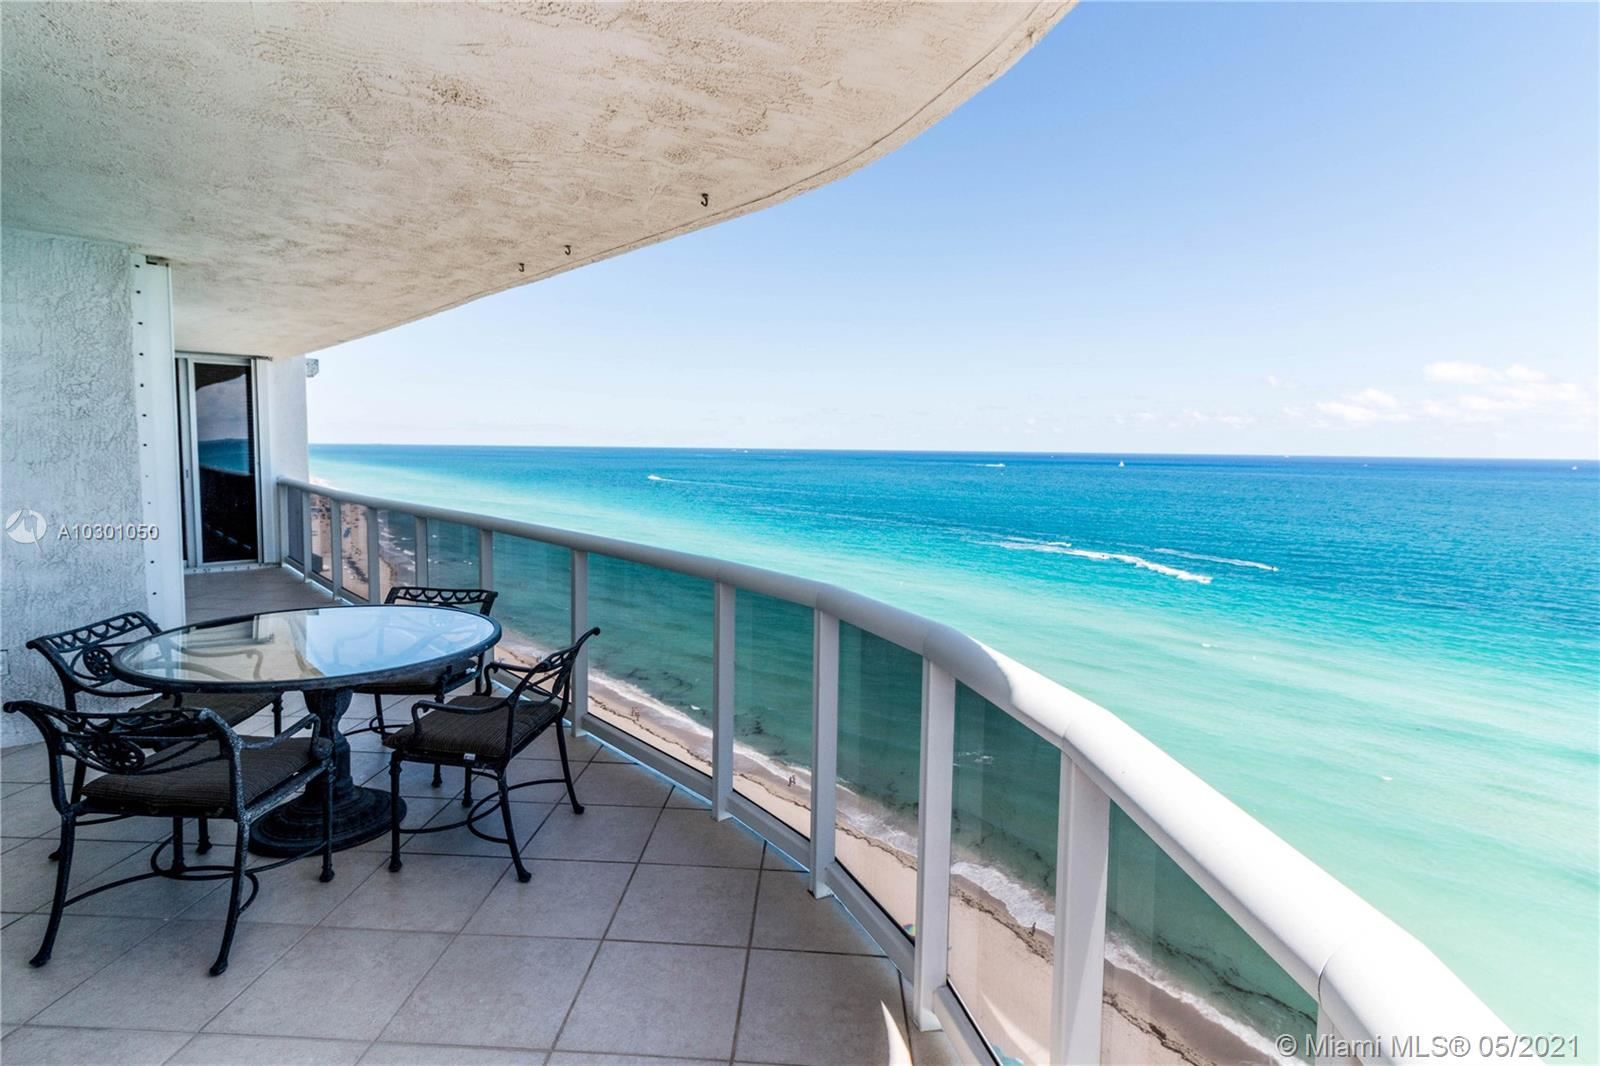 16711 Collins Ave #1907, Sunny Isles, FL 33160 - #: A10301050